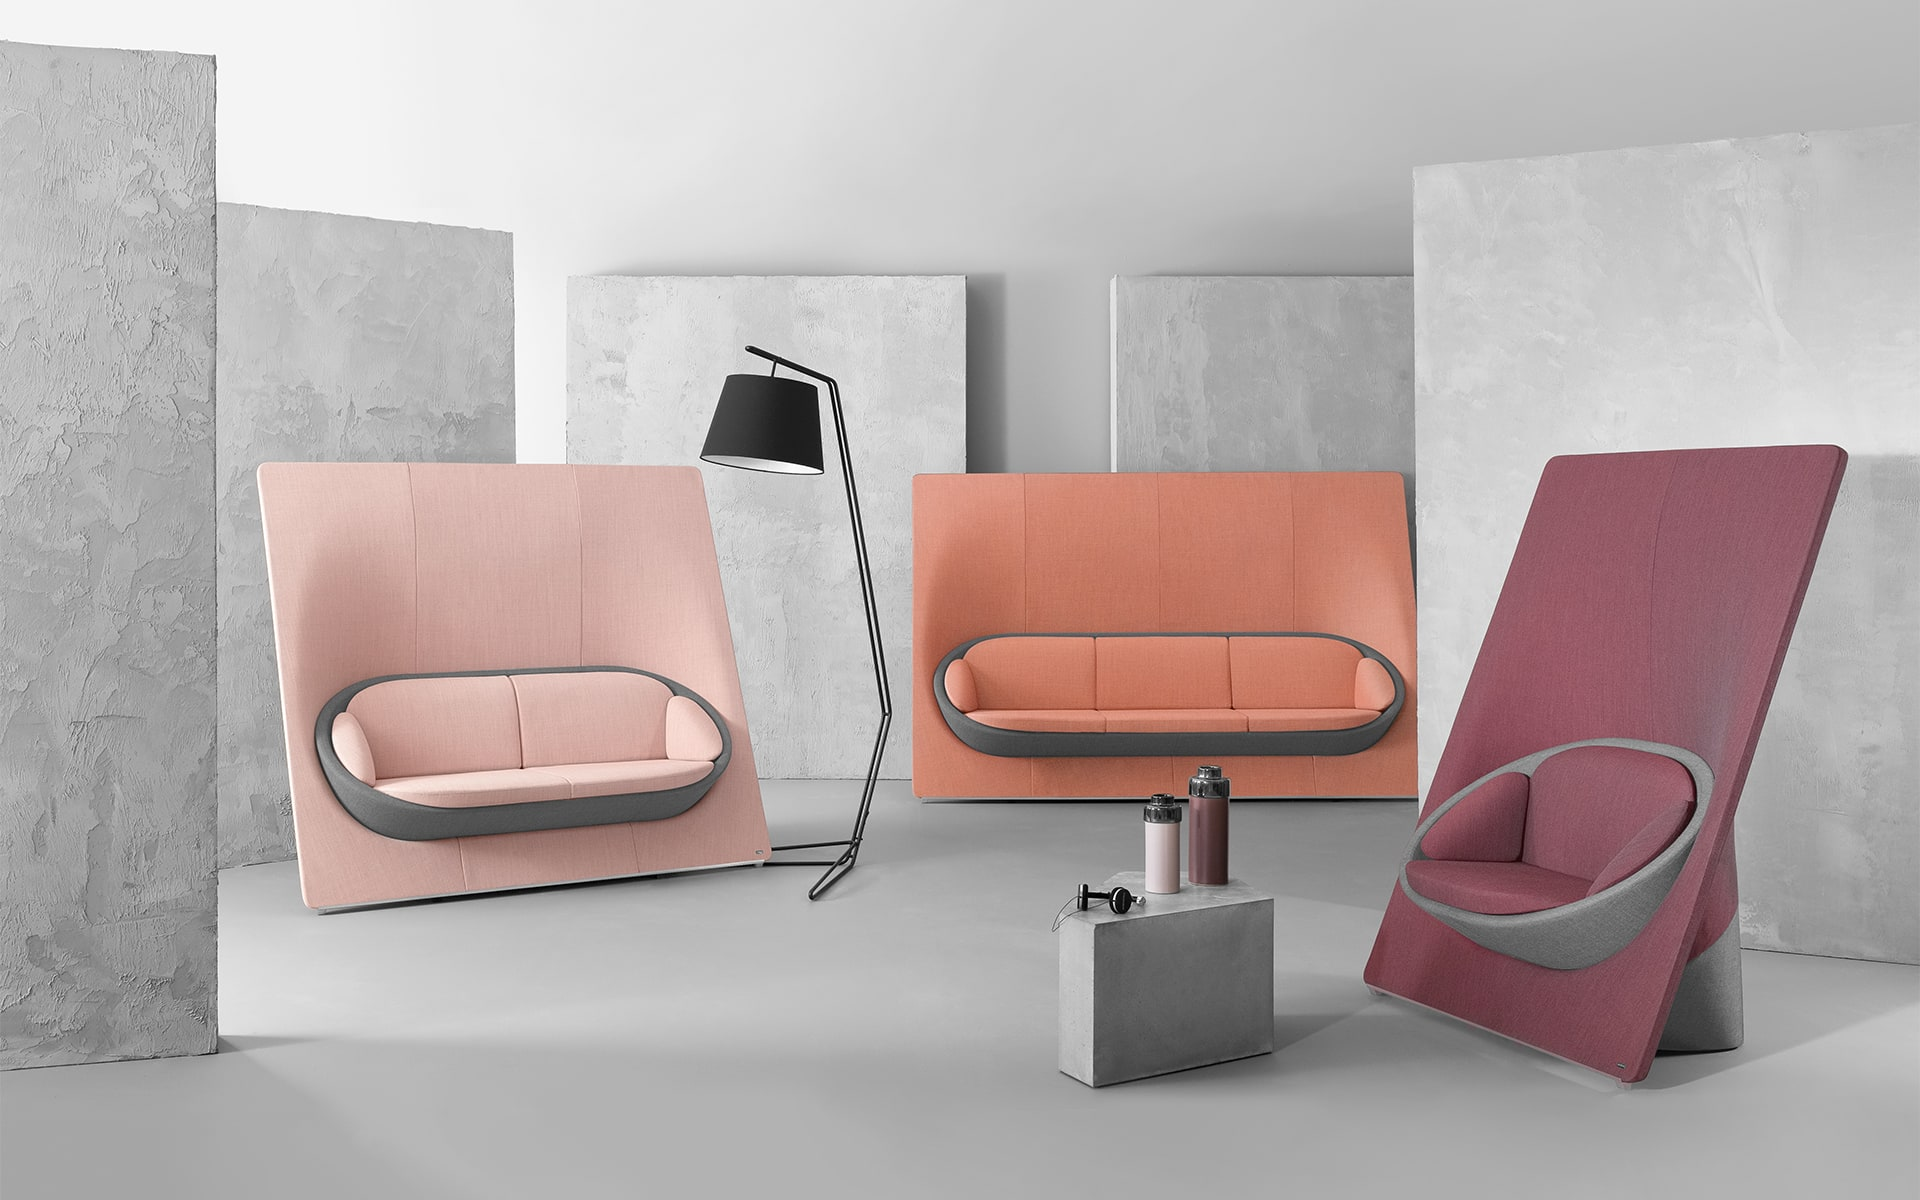 Various models of the Profim Wyspa lounge seating system by ITO Design in dusky pink, salmon and berry